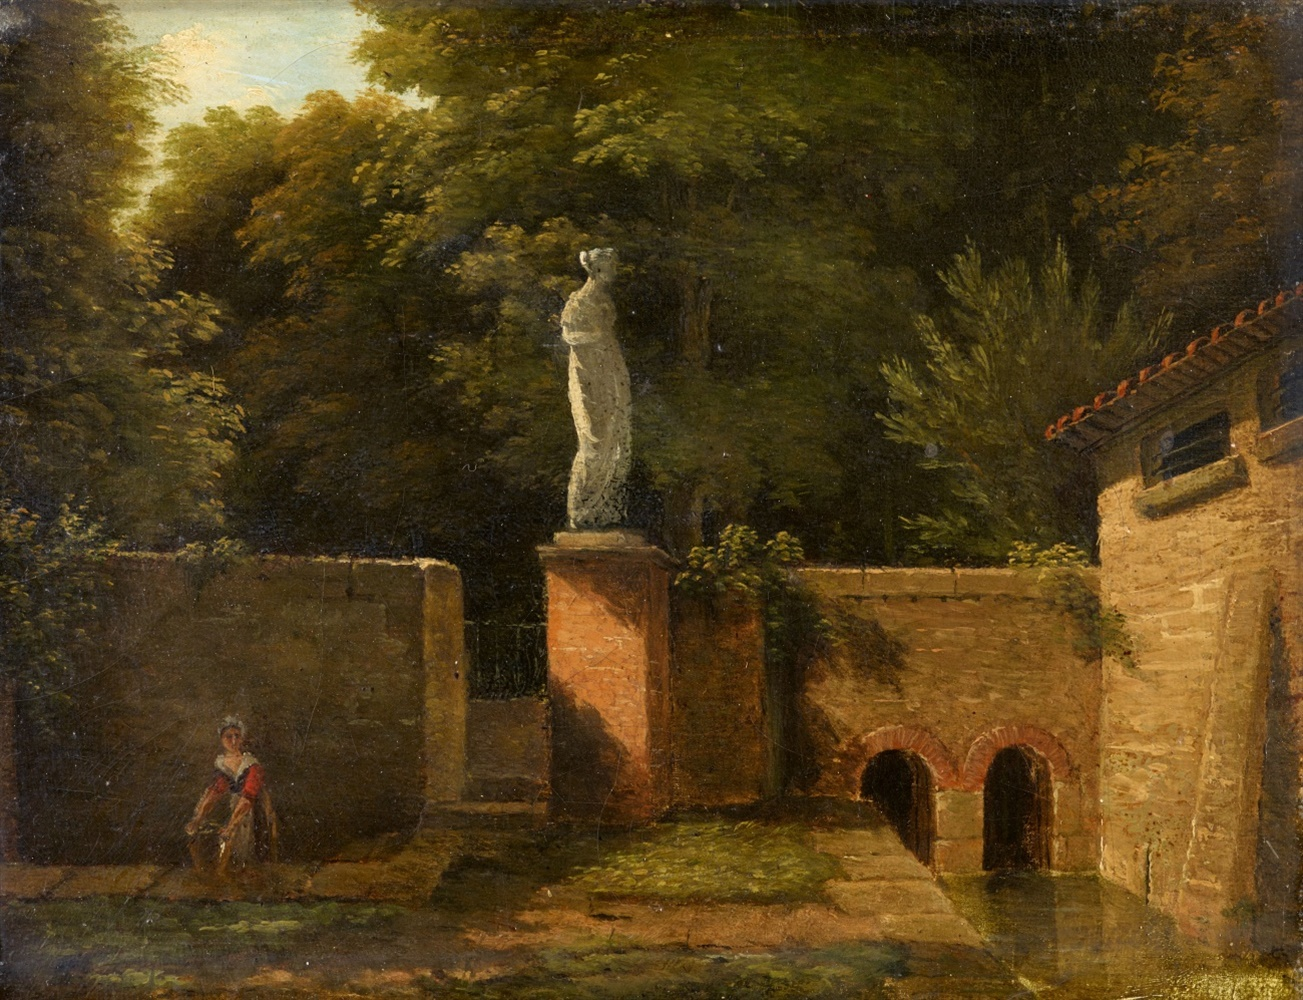 Jean-Victor BertinView of a Park with Fountain and Marble SculptureOil on canvas. 16.5 x 22 cm.